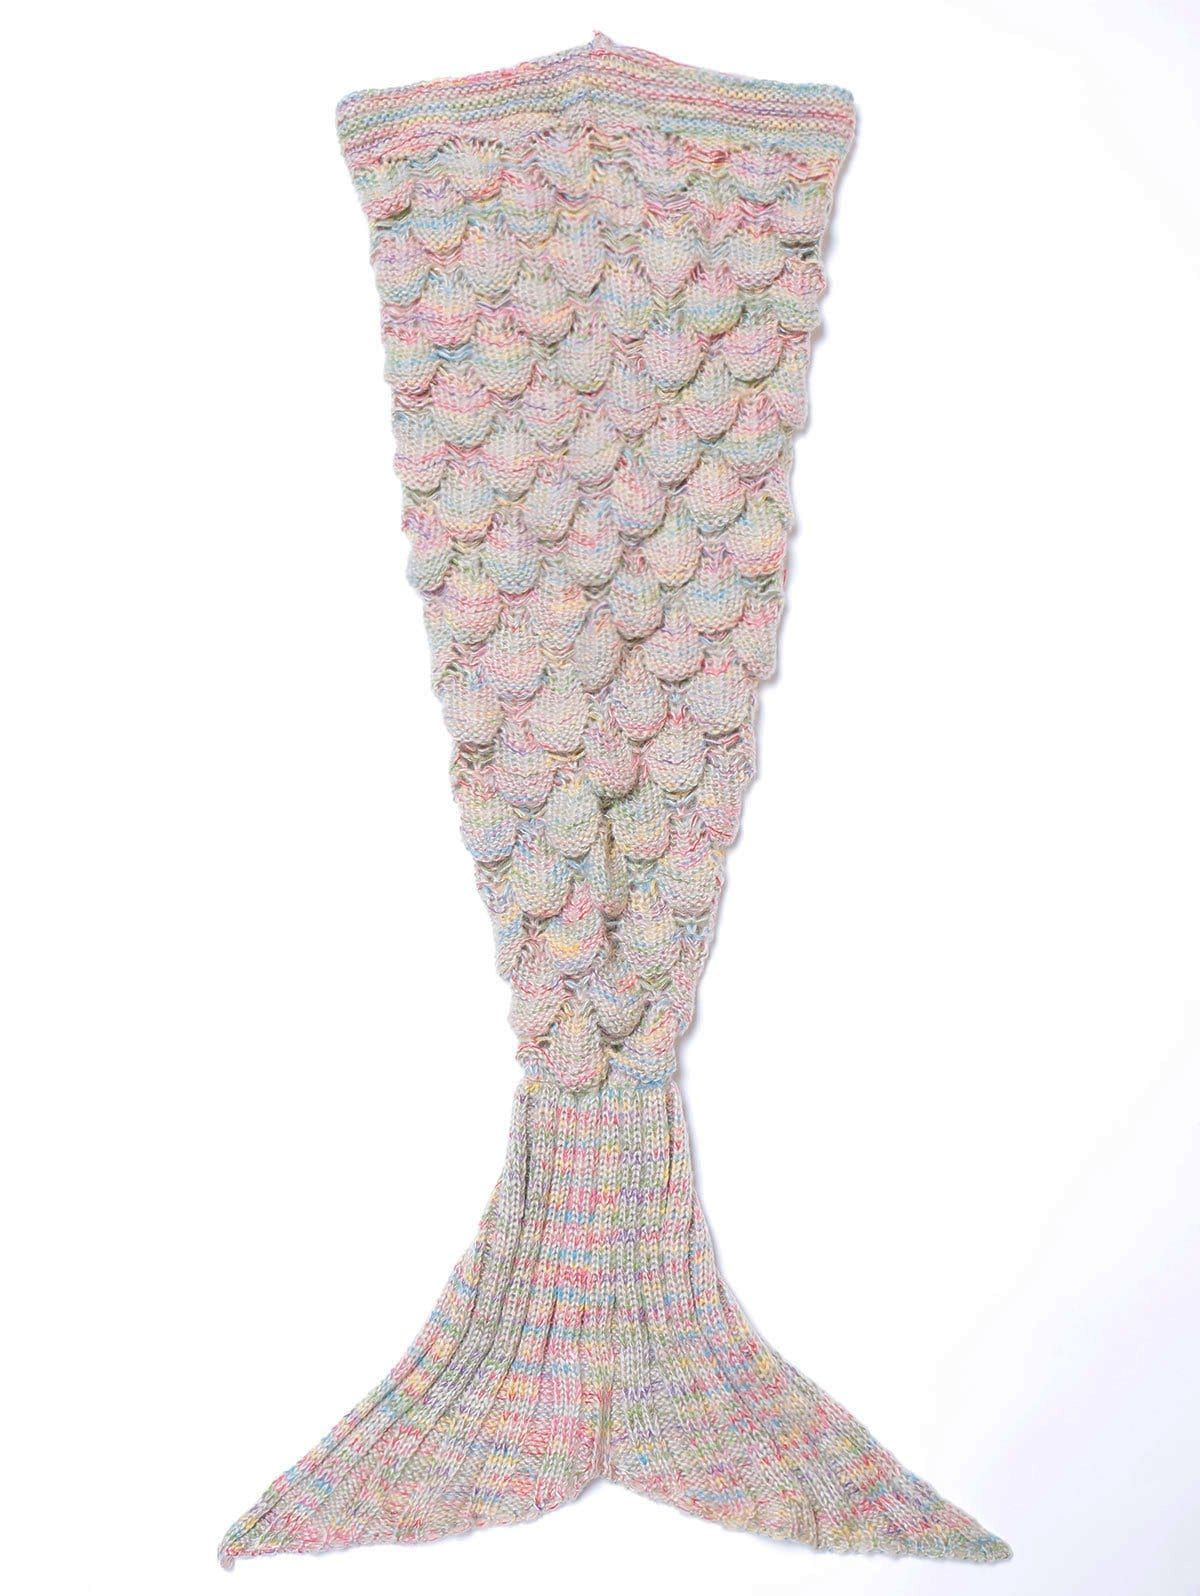 Endearing Multicolored Knitted Stretchy Mermaid Blanket